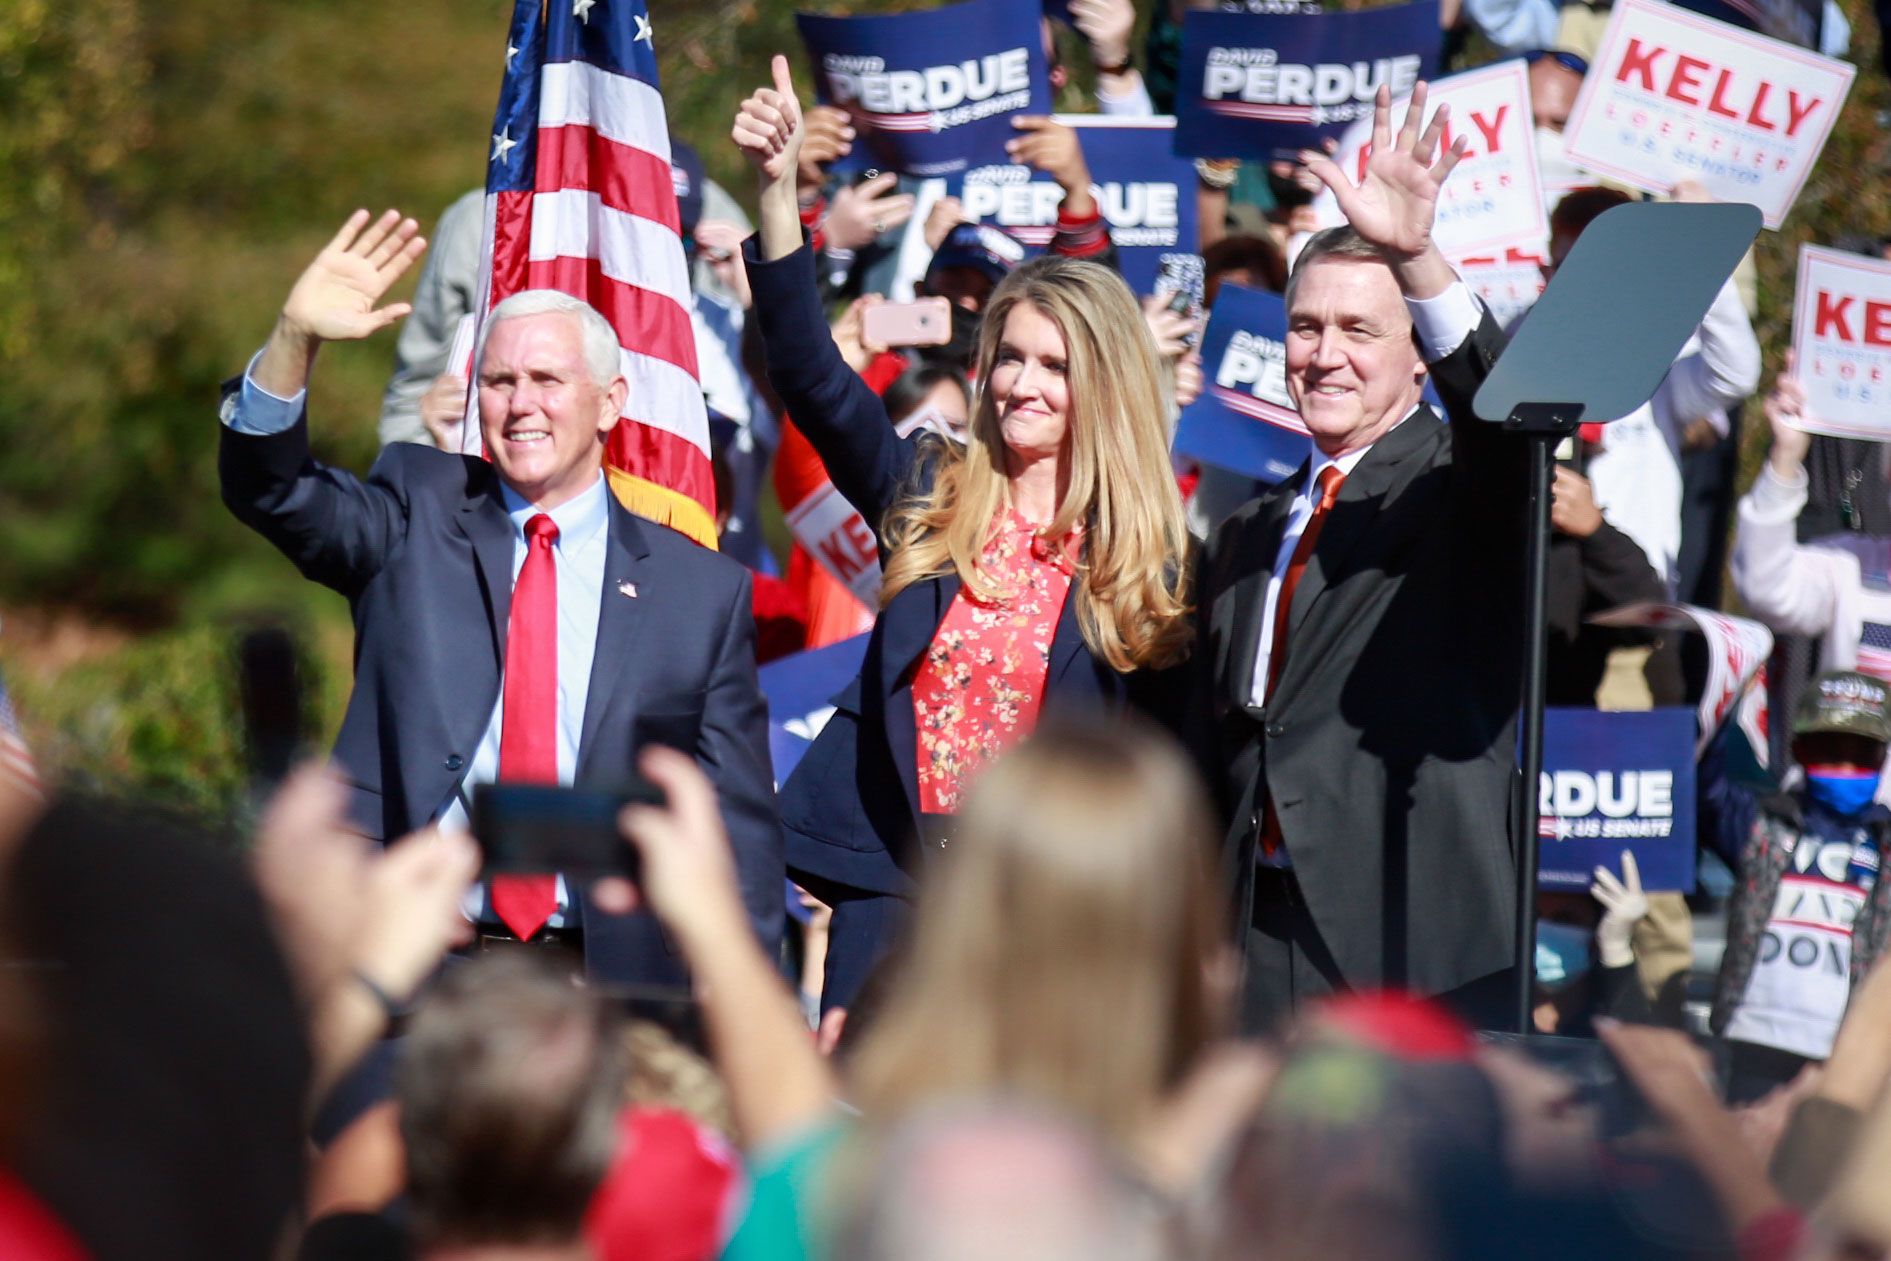 Vice President Mike Pence, Sen. Kelly Loeffler and Sen. David Perdue wave to supporters at a campaign rally in Canton, Georgia, on November 20.